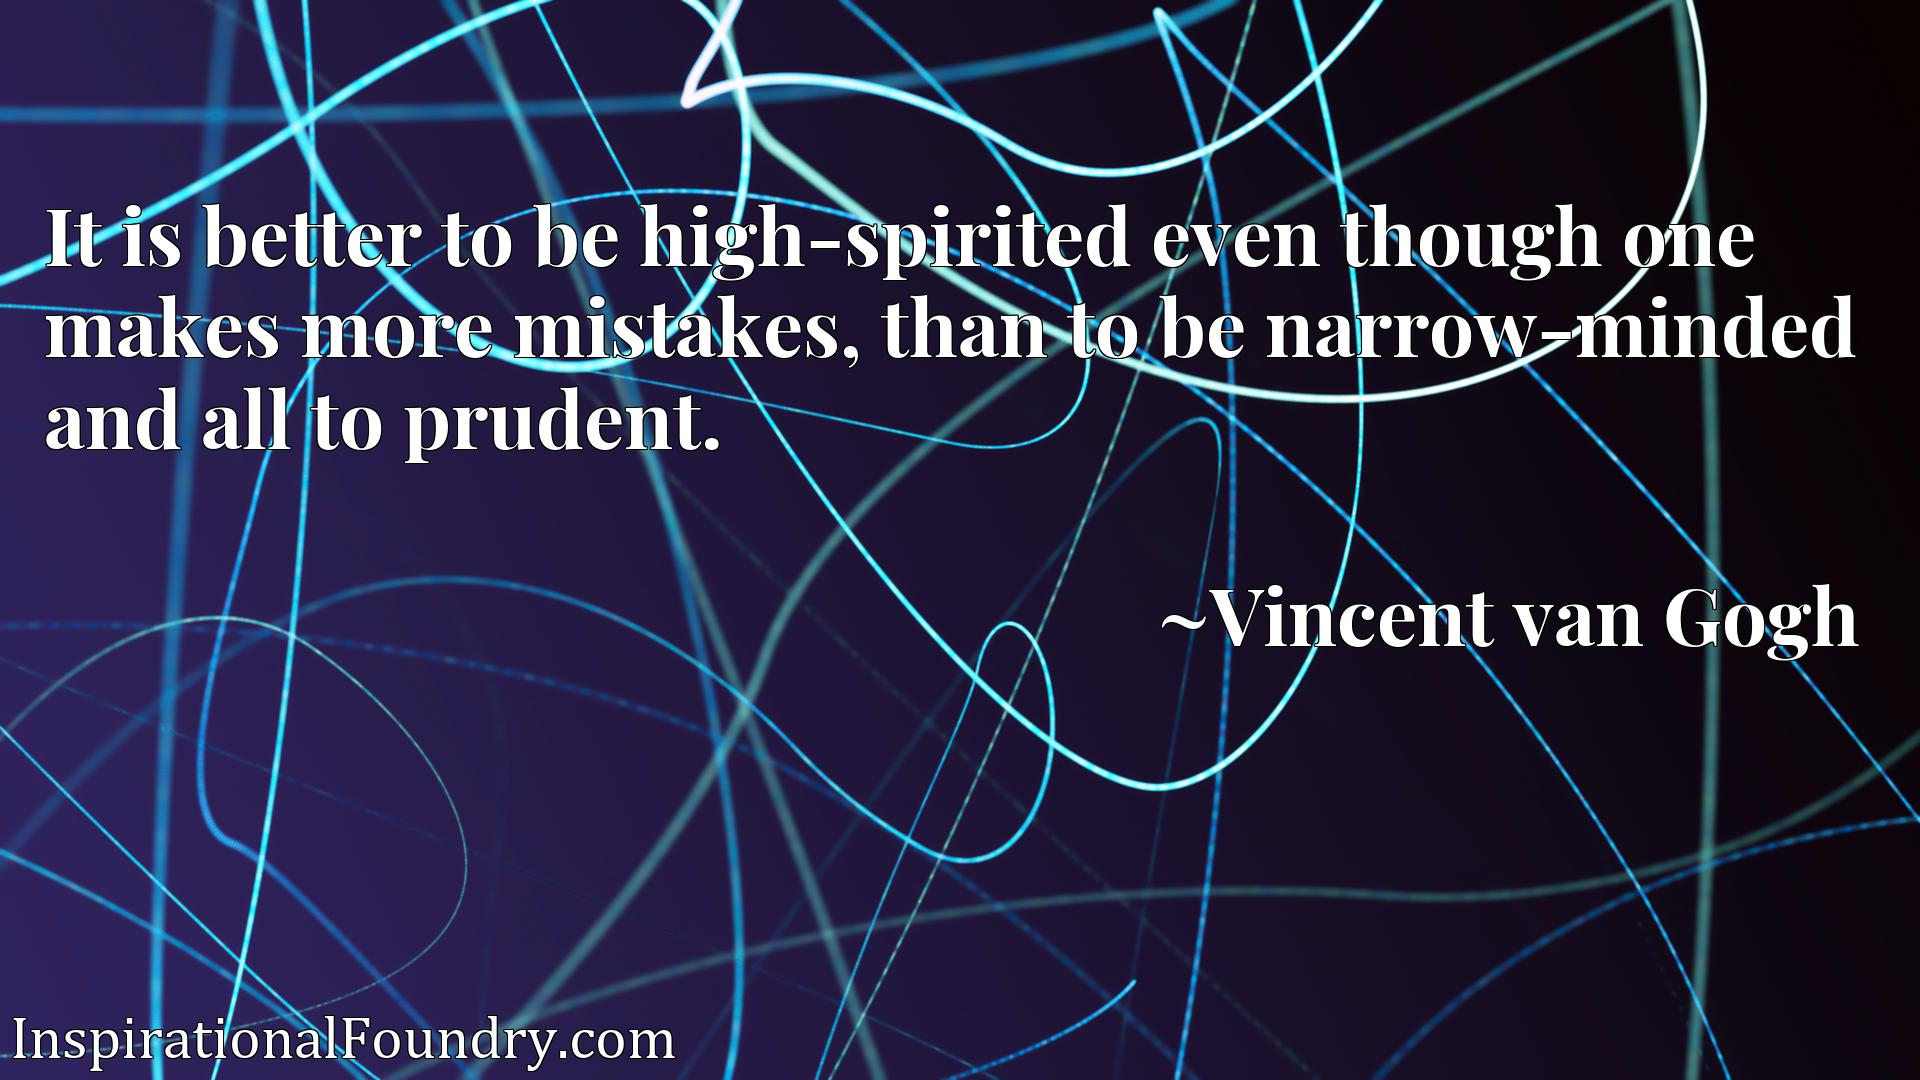 It is better to be high-spirited even though one makes more mistakes, than to be narrow-minded and all to prudent.